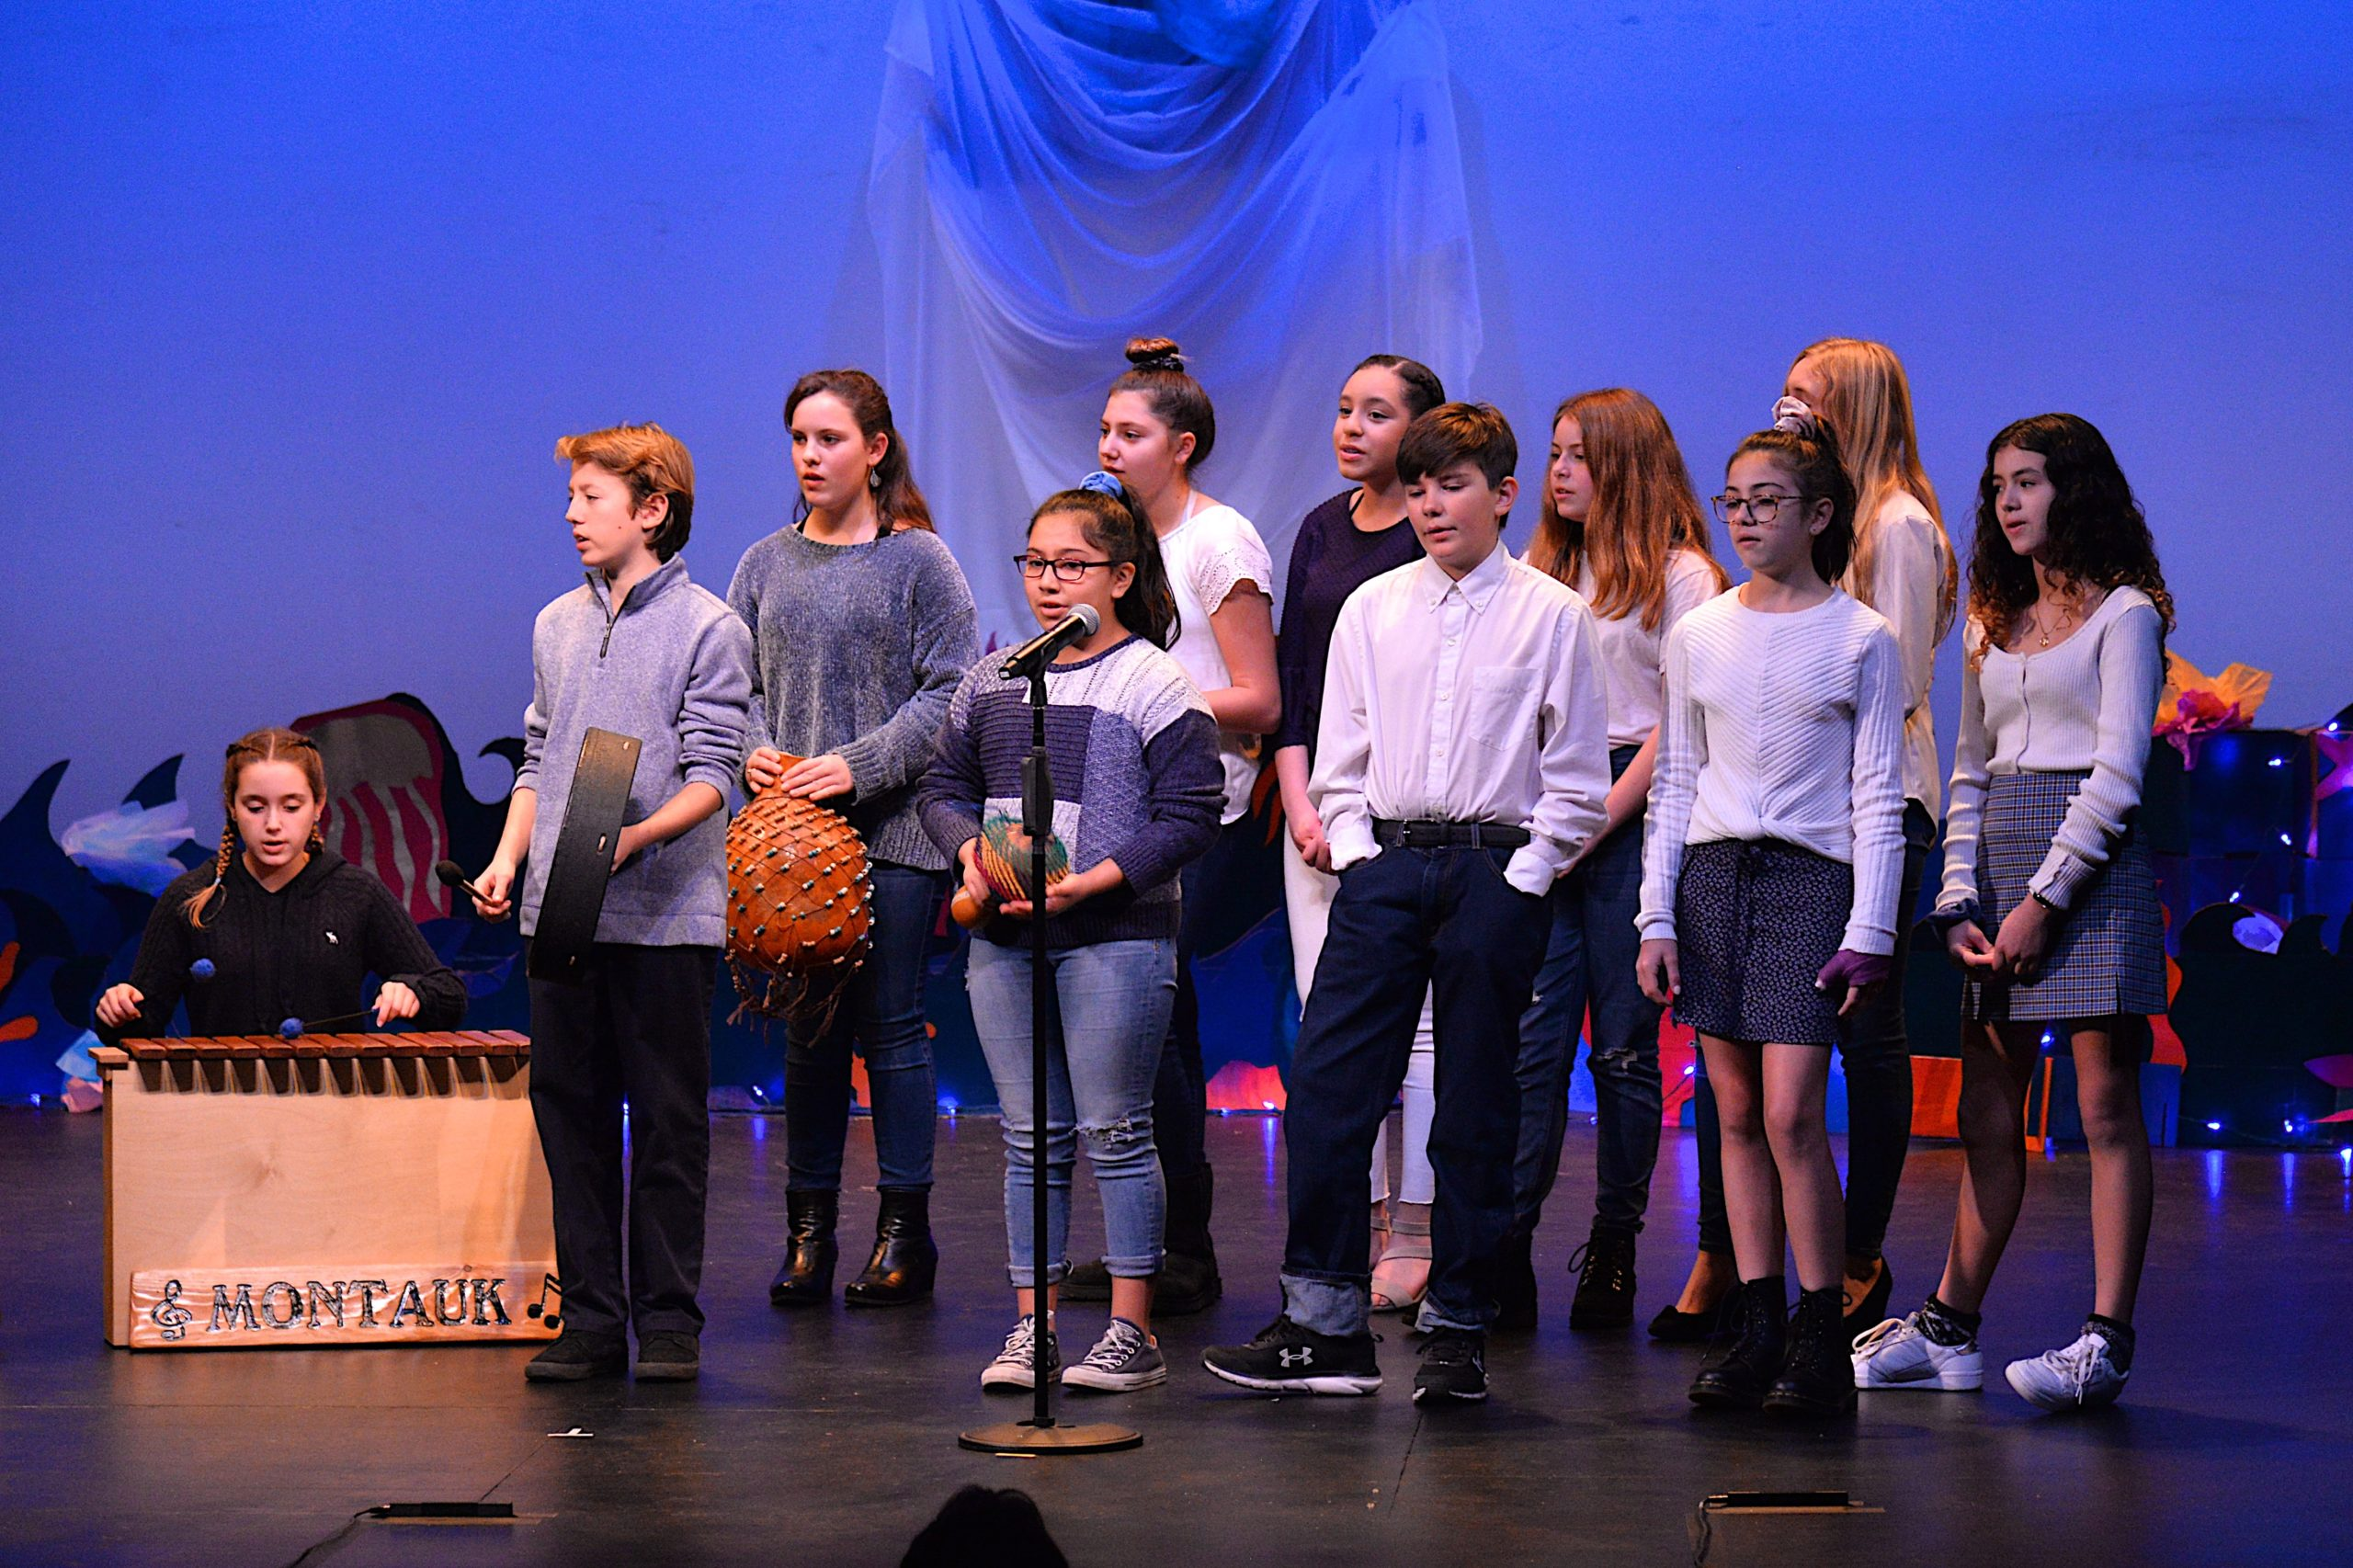 The Student Arts Festival opened at Guild Hall on Saturday with a reception. The Montauk School chorus performed. KYRIL BROMLEY